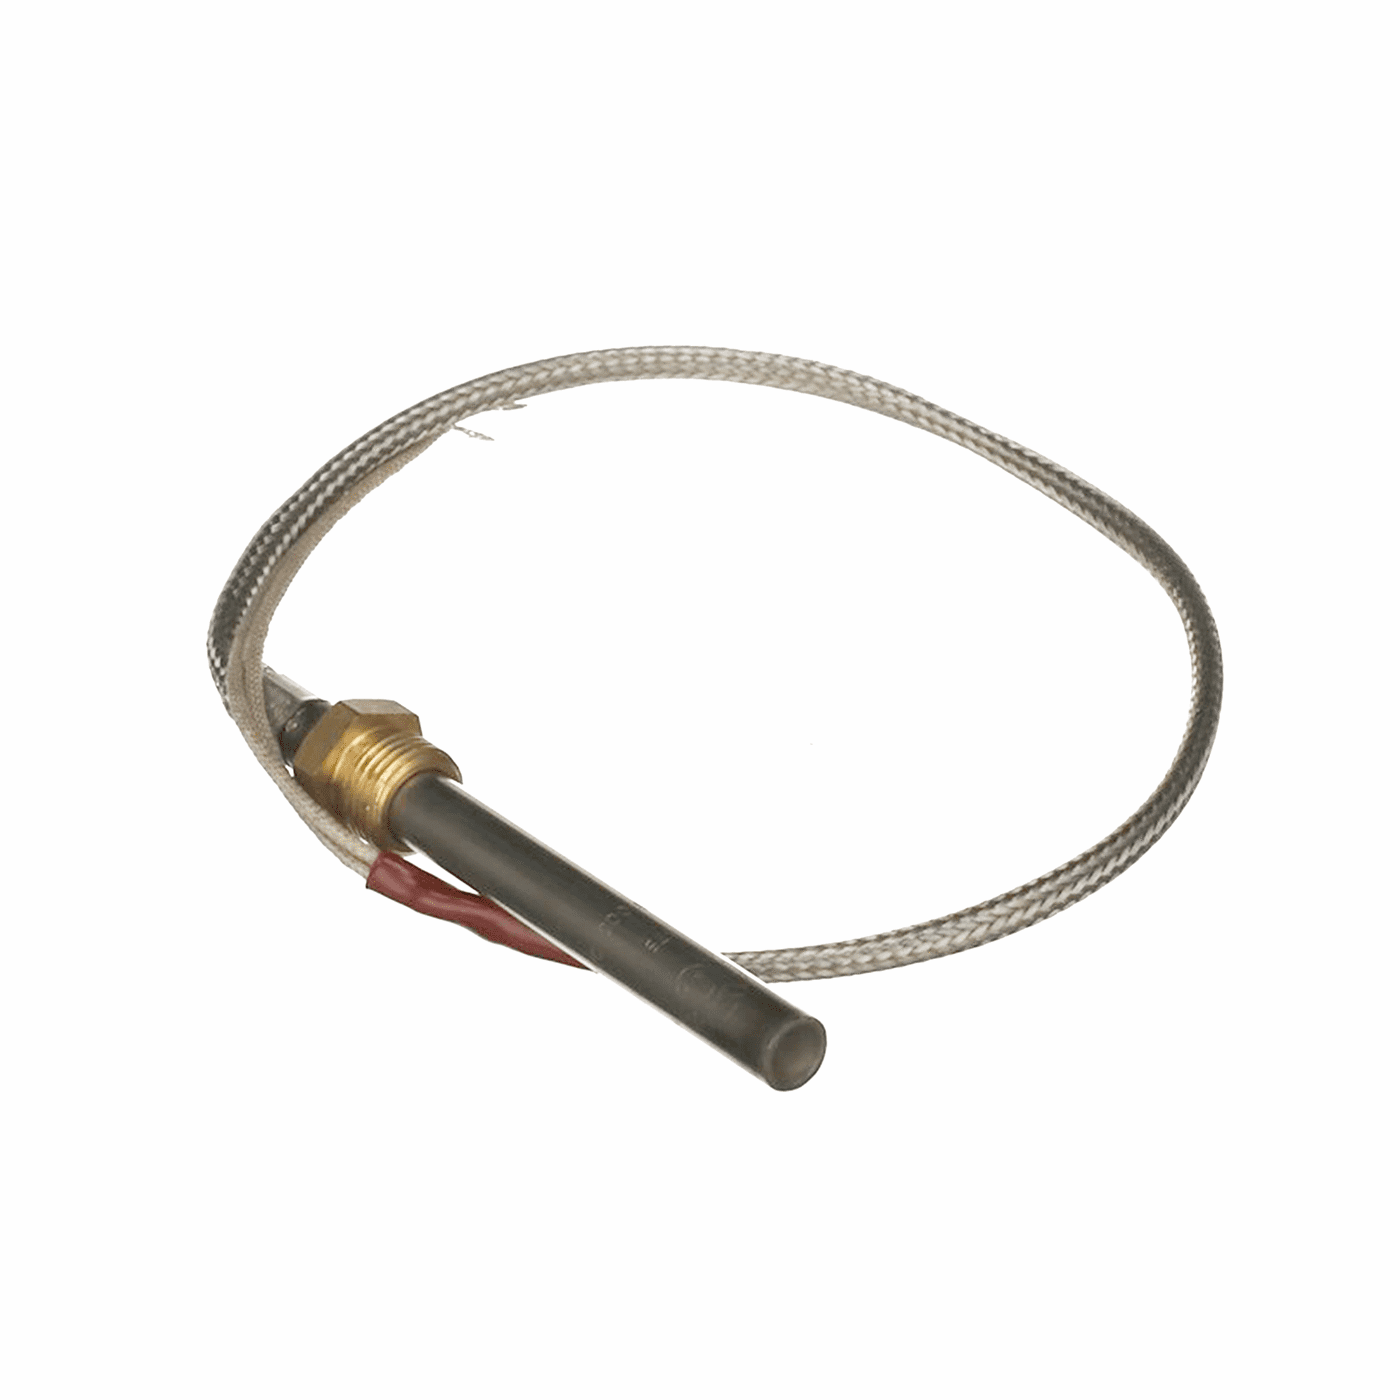 "00-0035-0133 | Thelin 3 1/4"" Igniter made for the Parlour 2006 & before, 00-0035-0133"